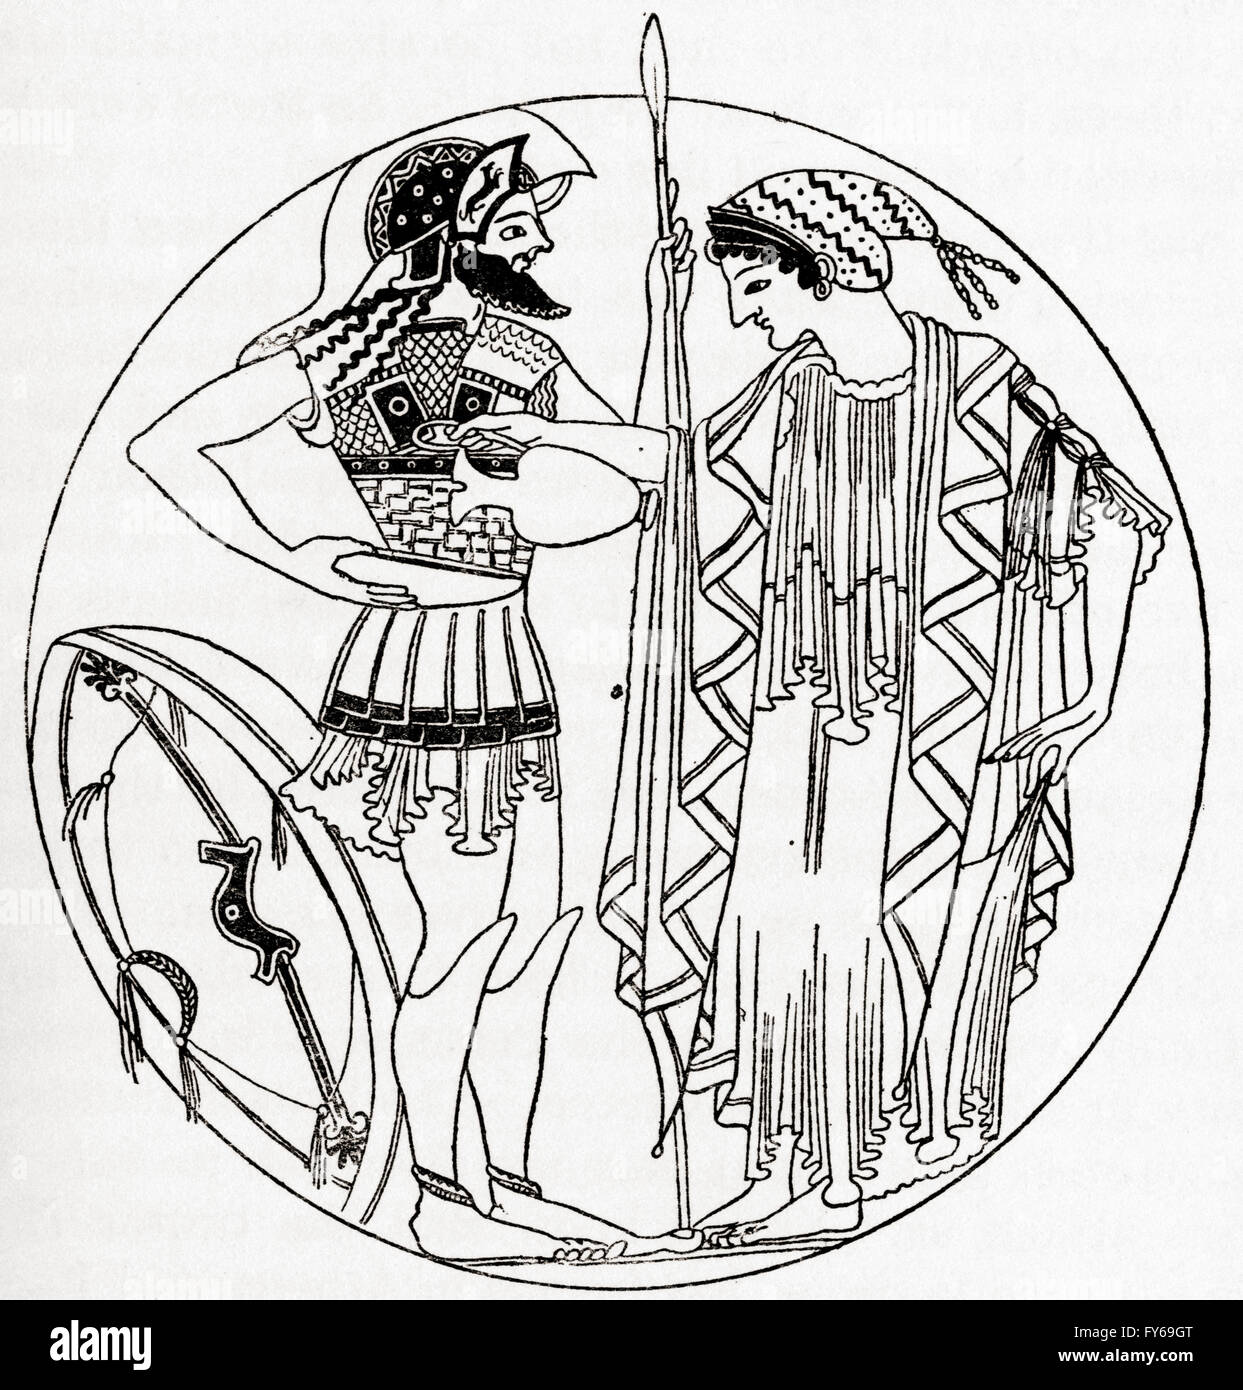 Greek woman pouring a libation, from an ancient vase drawing. A libation is a ritual pouring of a liquid as an offering - Stock Image